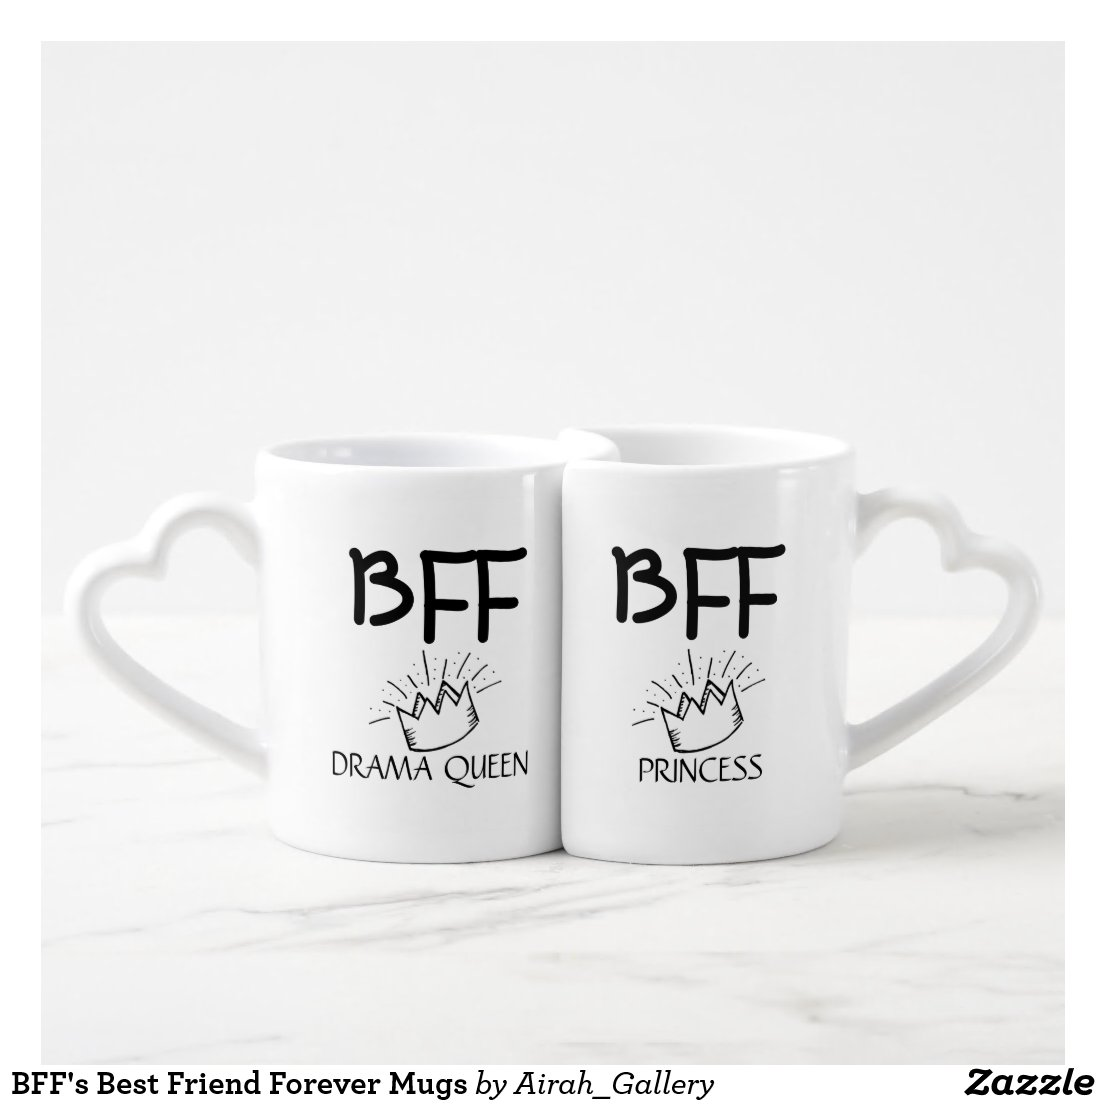 BFF's Best Friend Forever Mugs